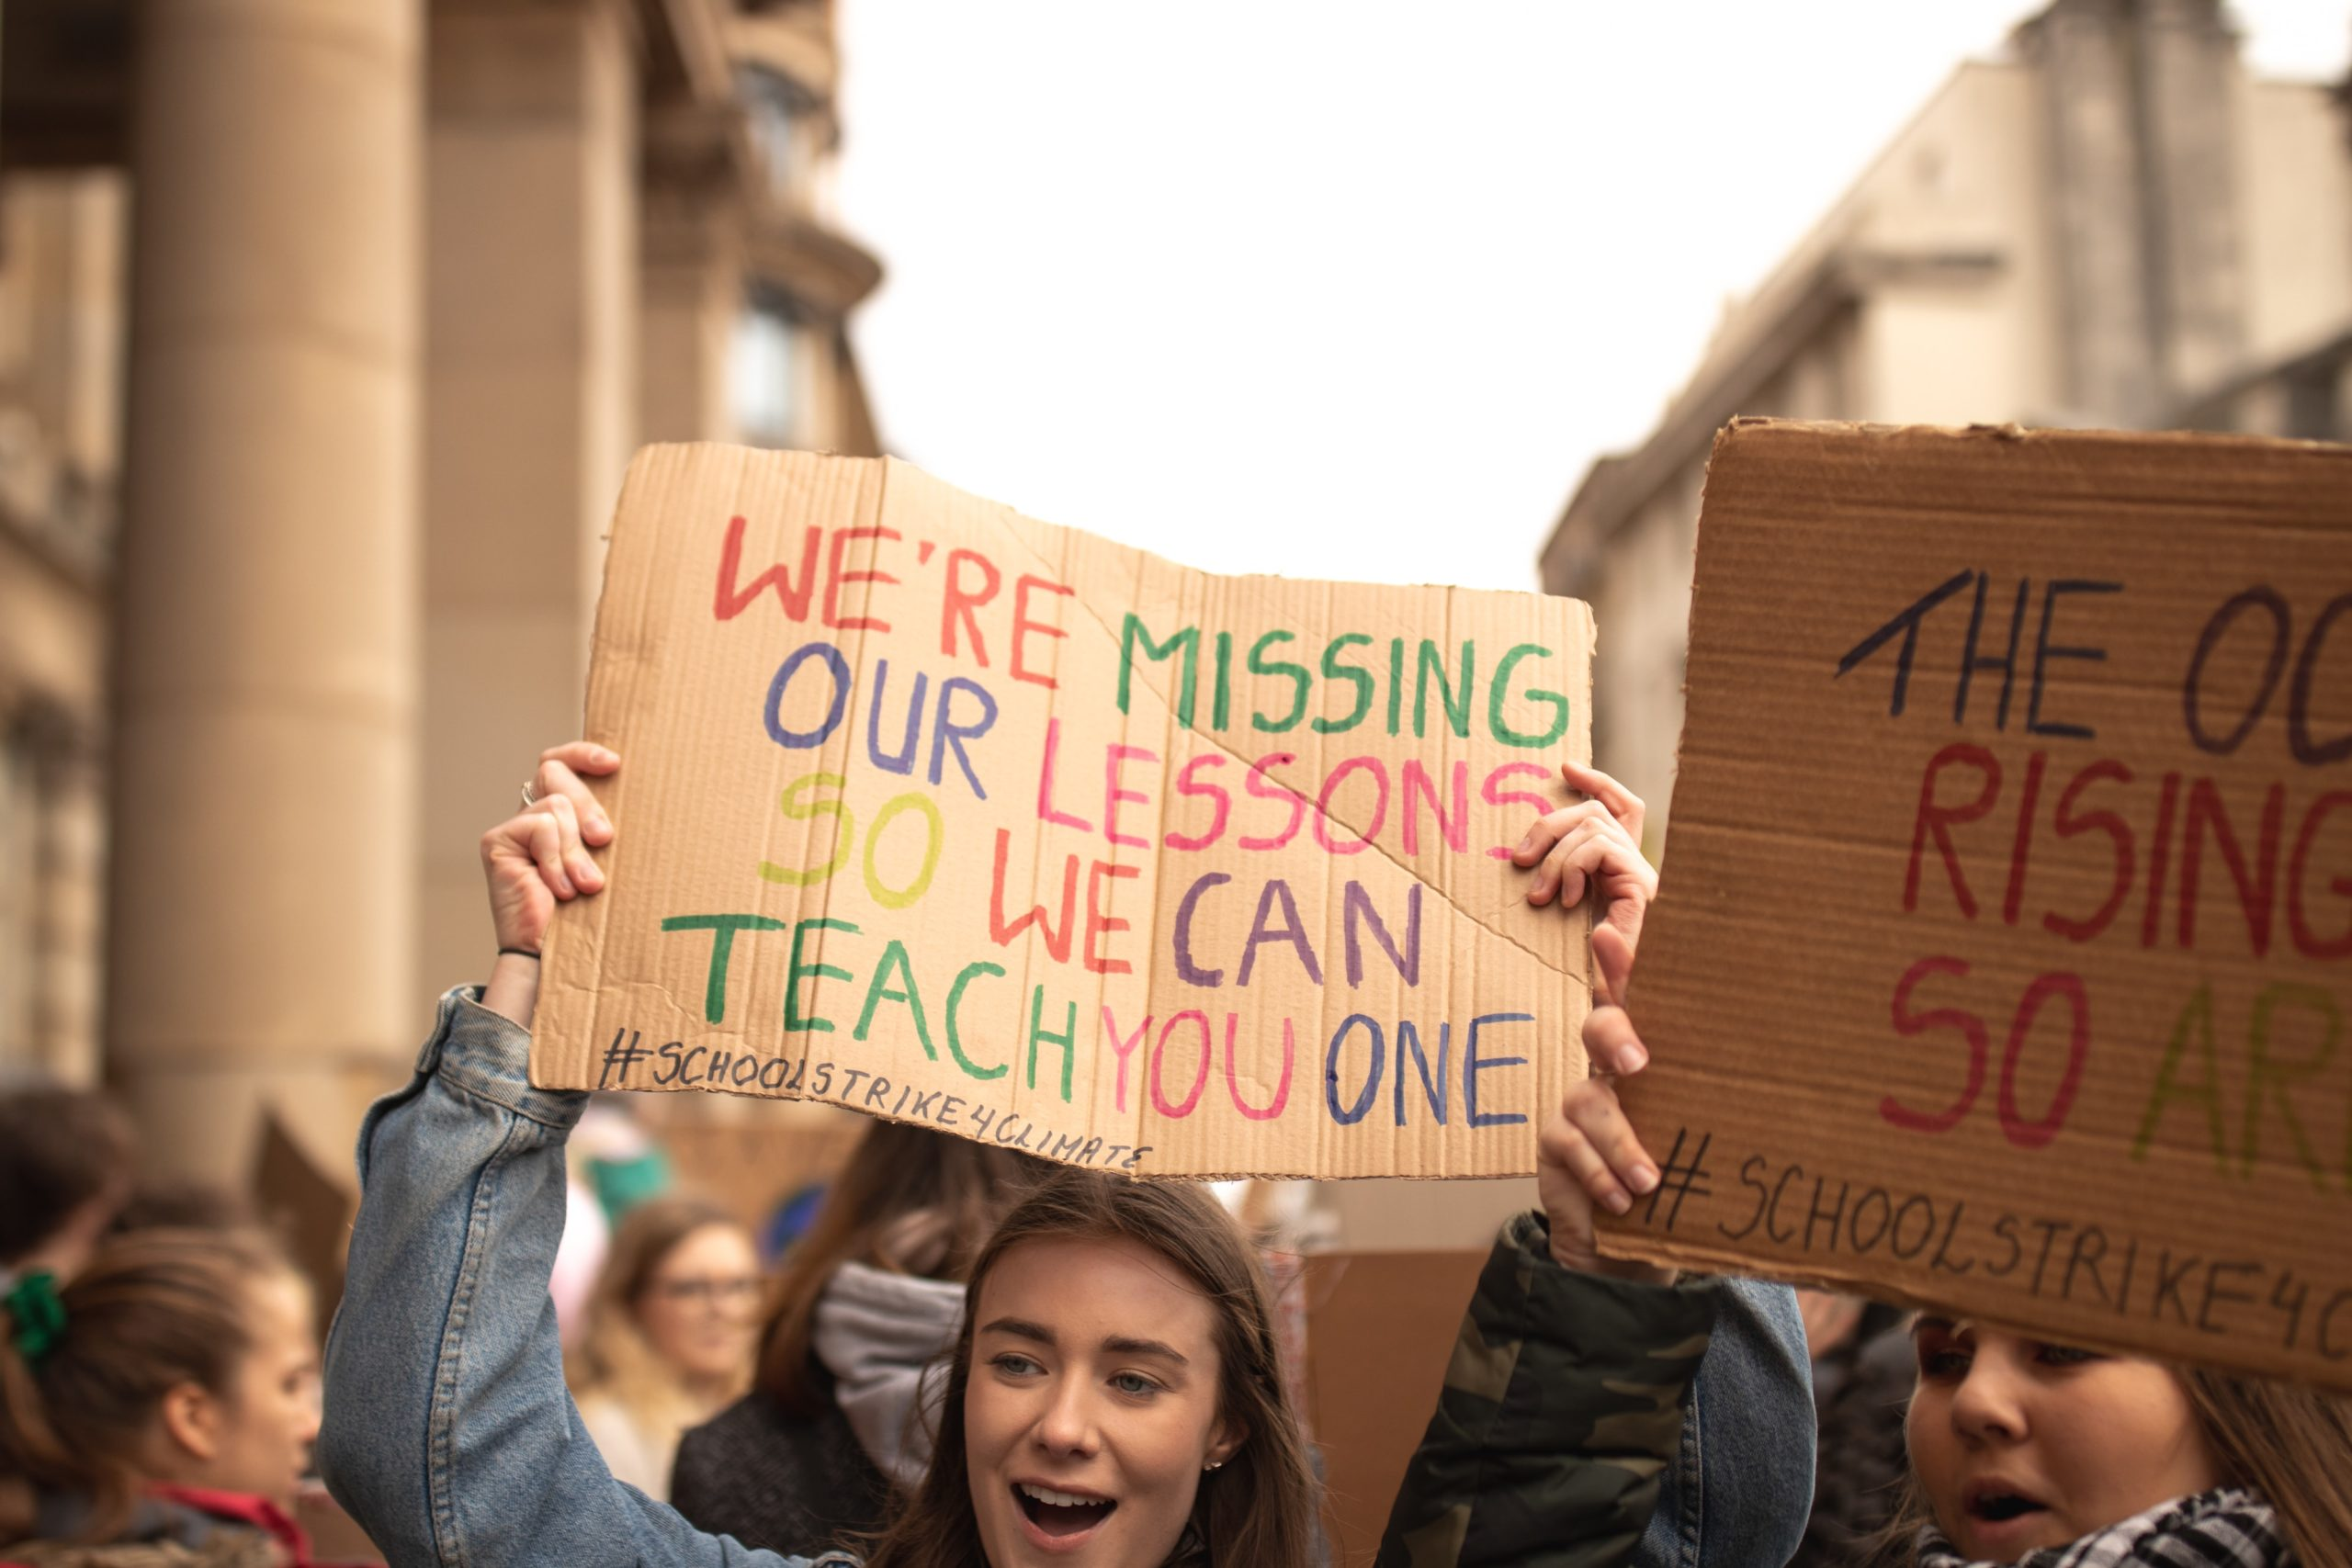 Young person at a climate change strike holdingup a sign that reads